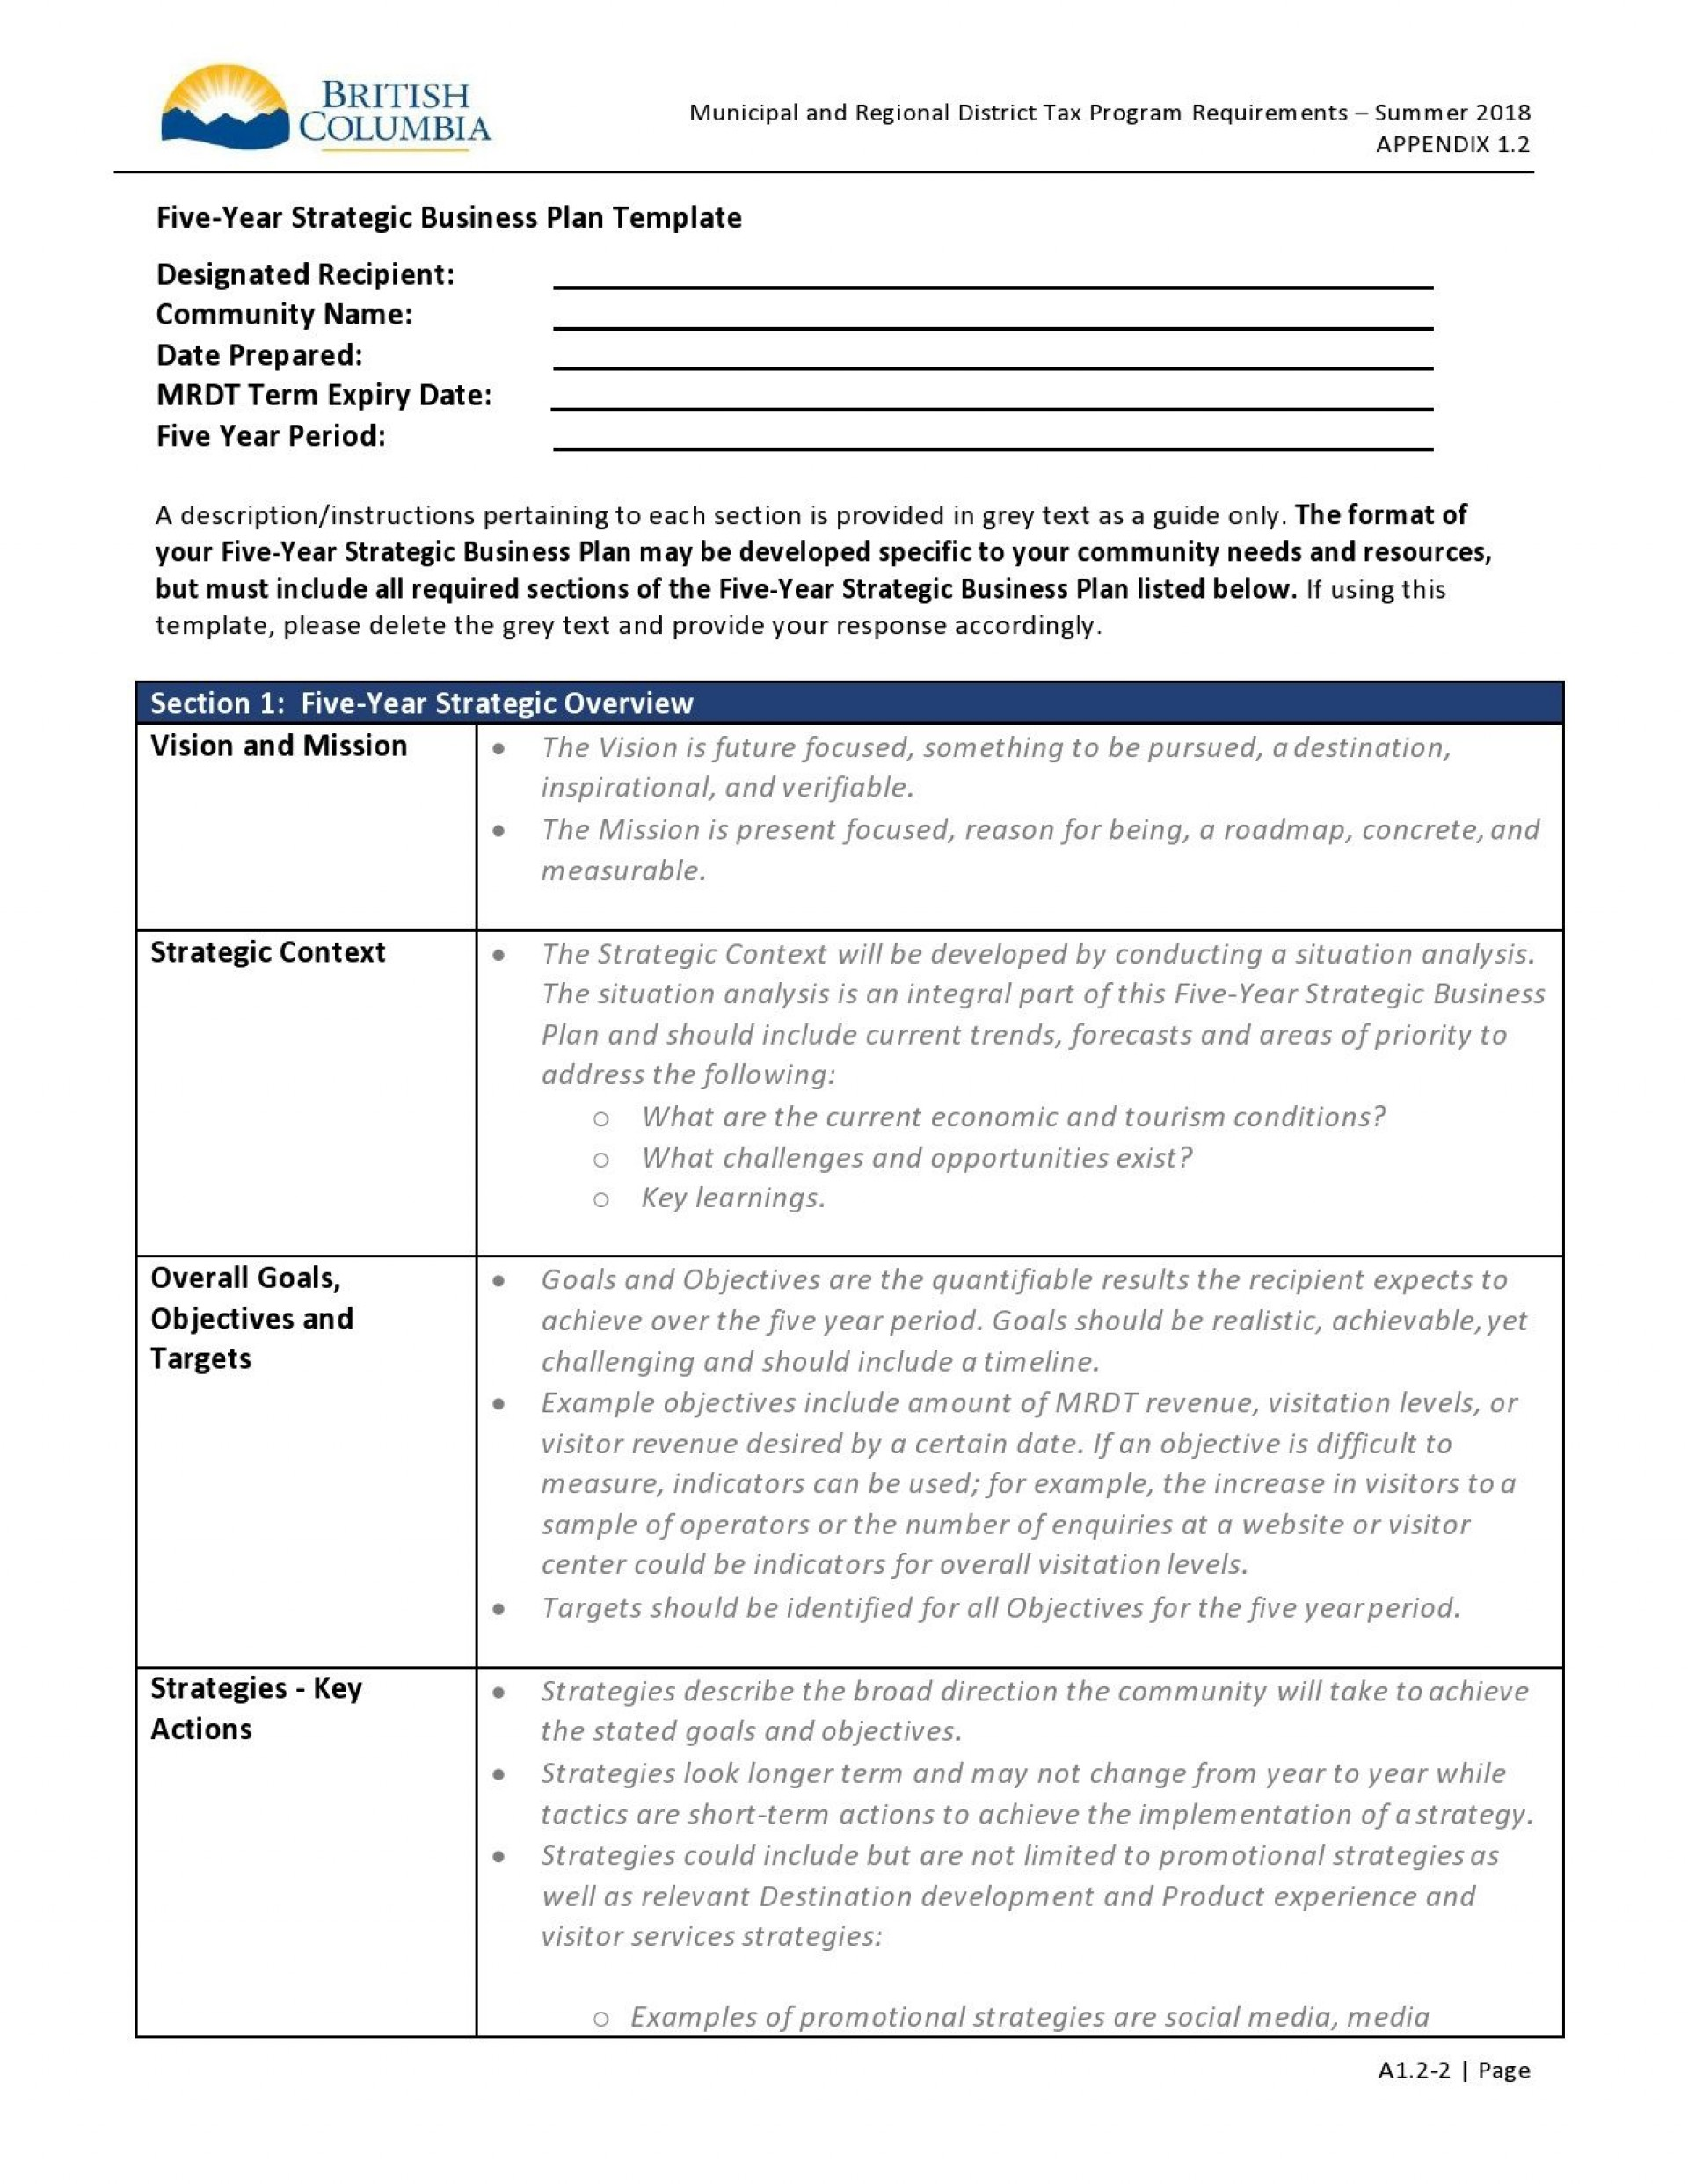 001 Unusual 5 Year Plan Template Image  Pdf Busines For Couple1920